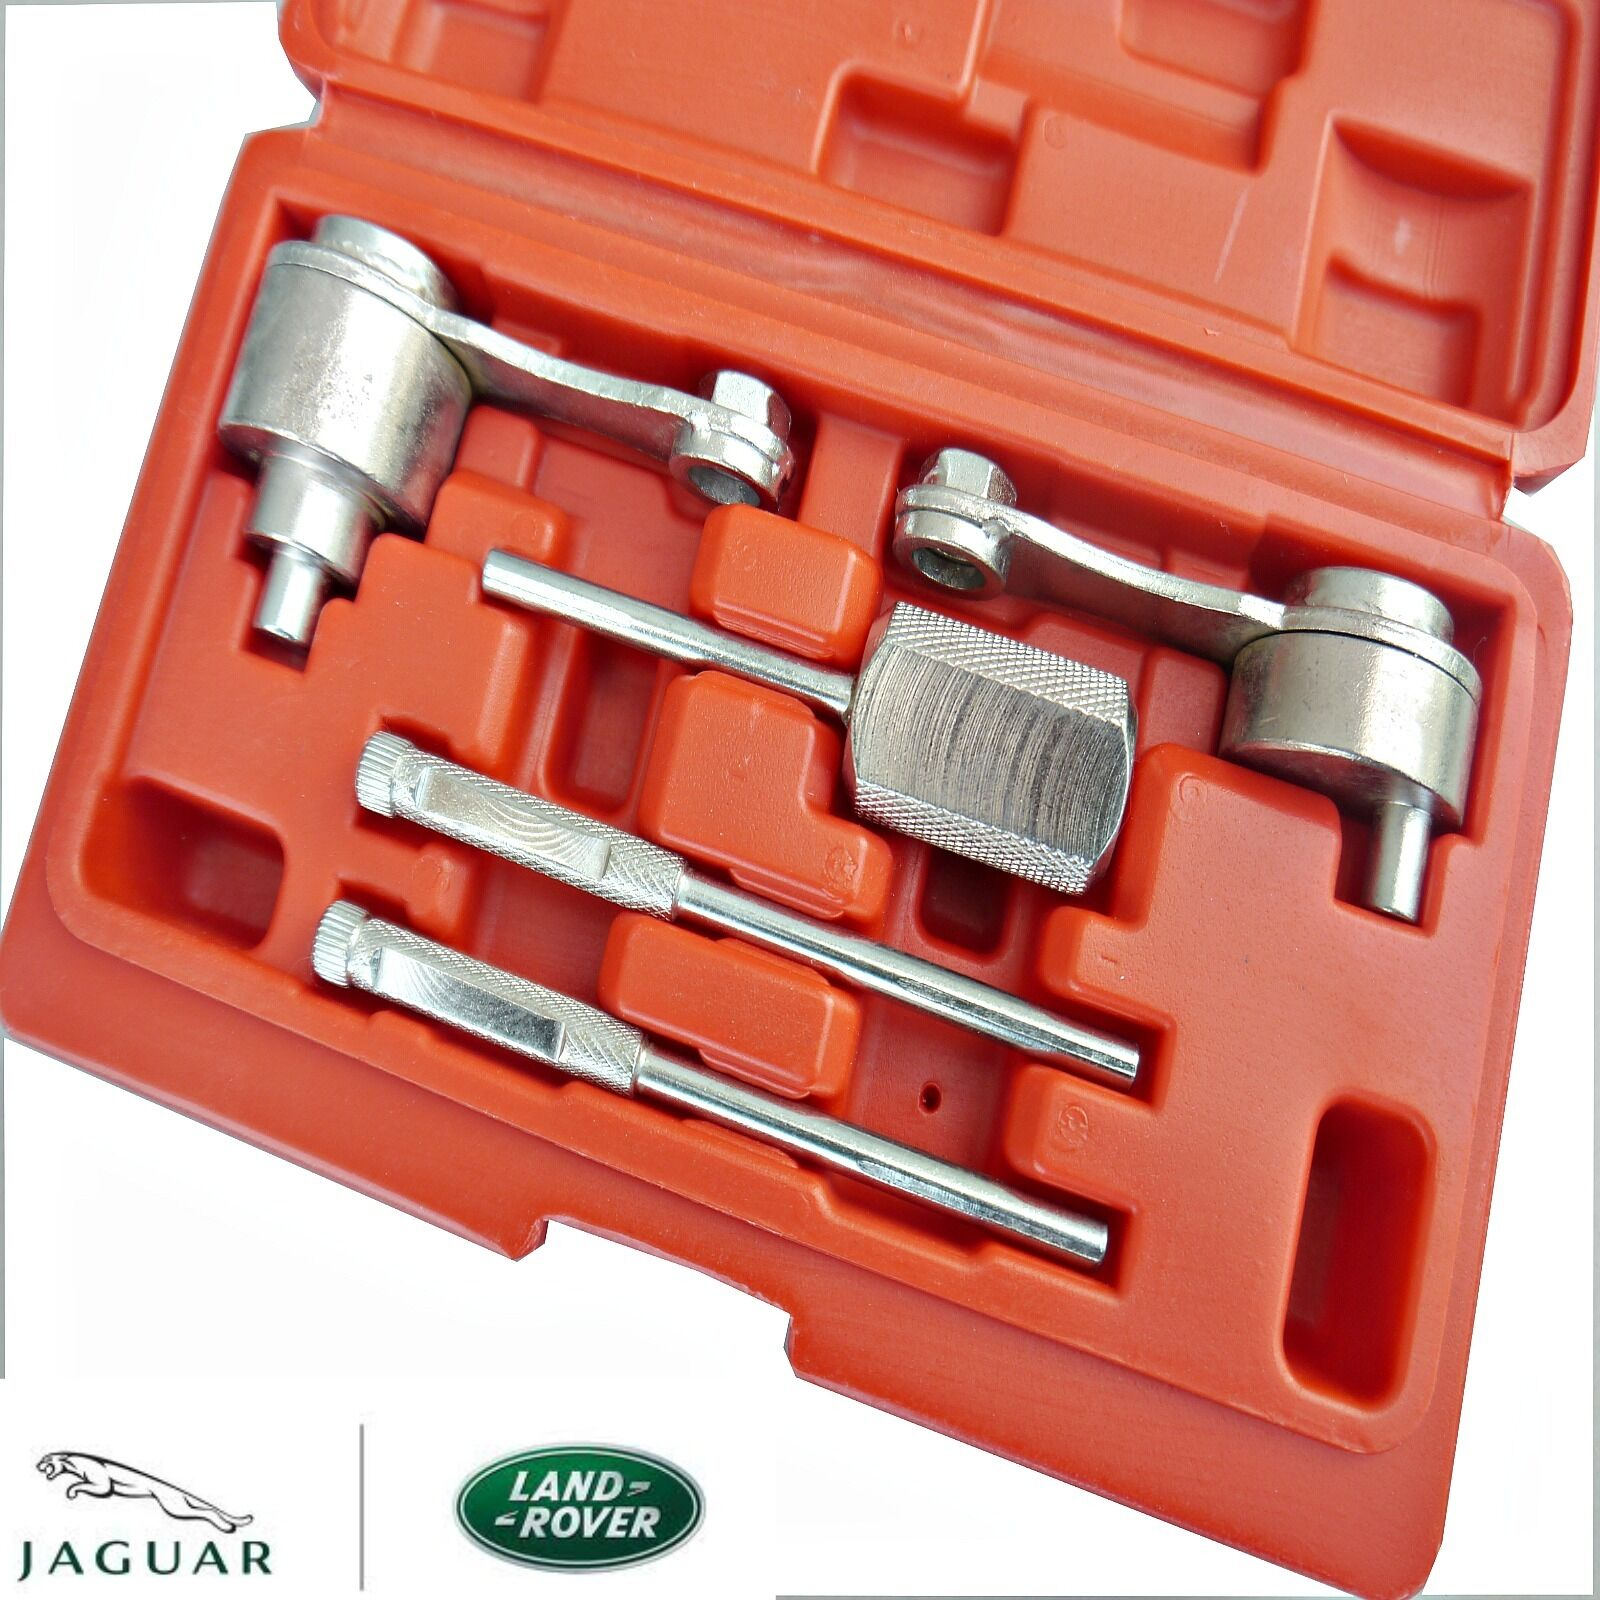 Vw 1600 Engine Removal: Jaguar Land Rover Timing Setting Locking Tool Kit 2.7d